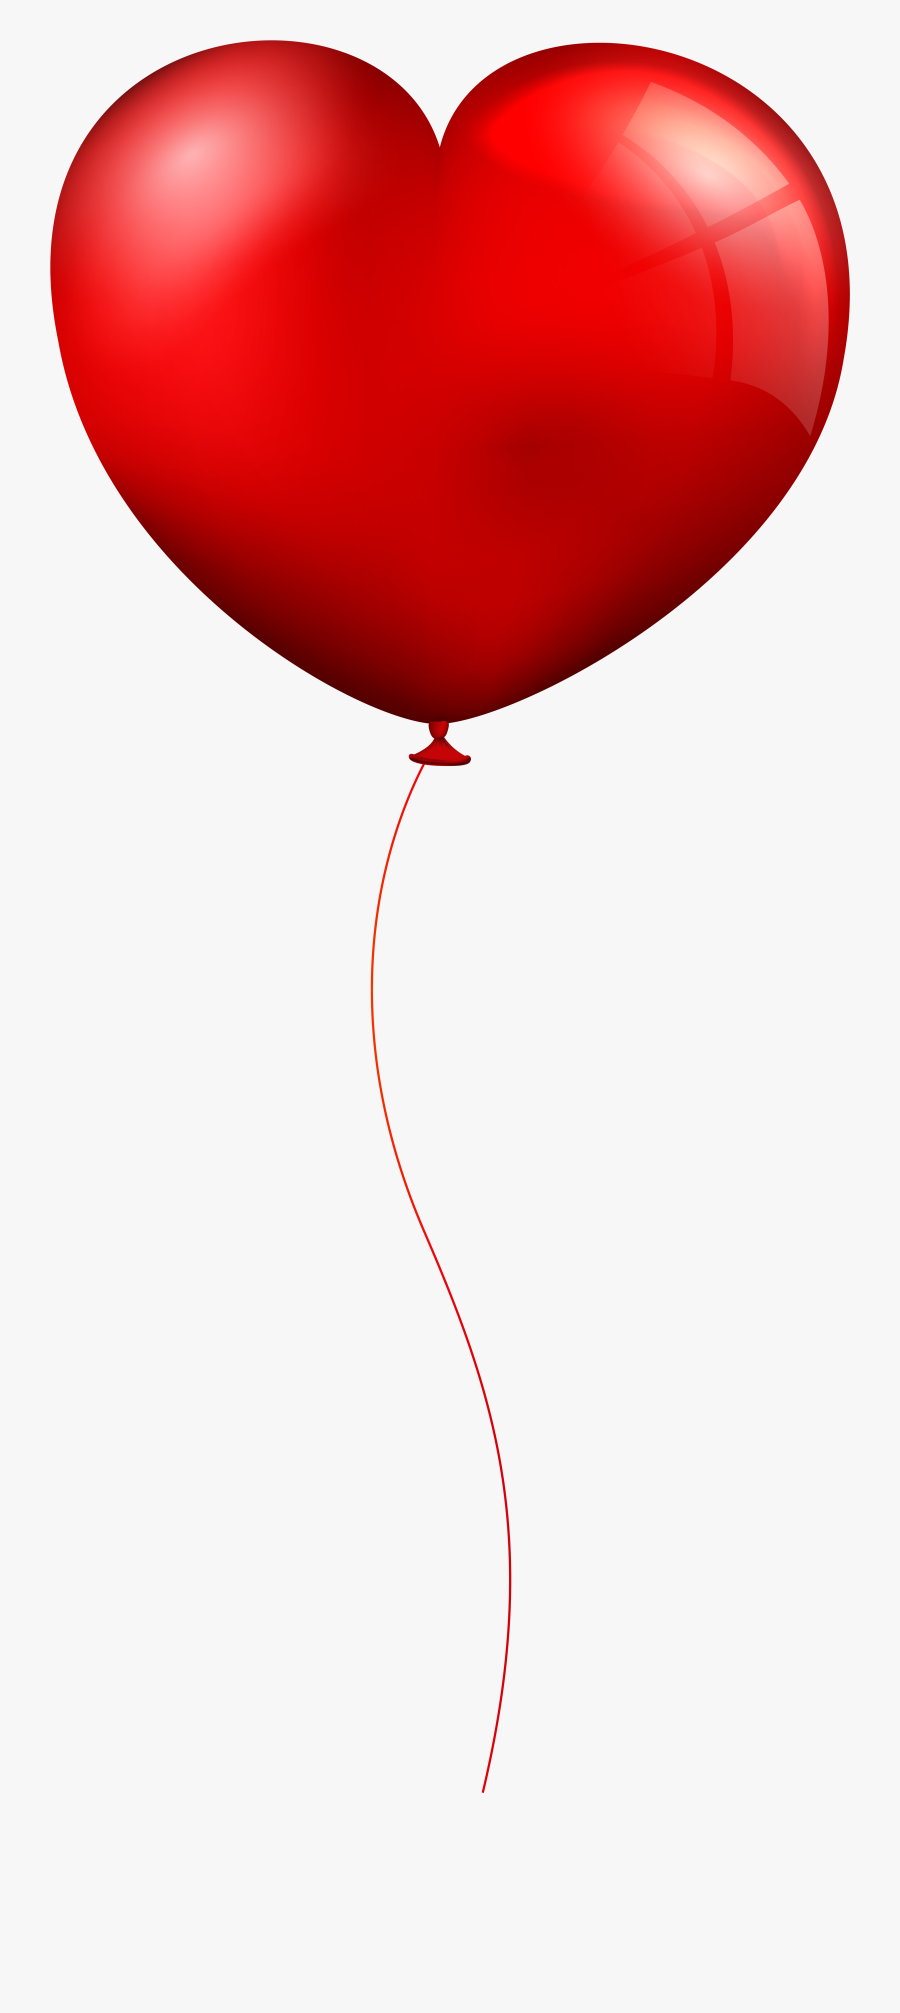 Red Heart Balloon Clip - Red Balloon Transparent Background, Transparent Clipart